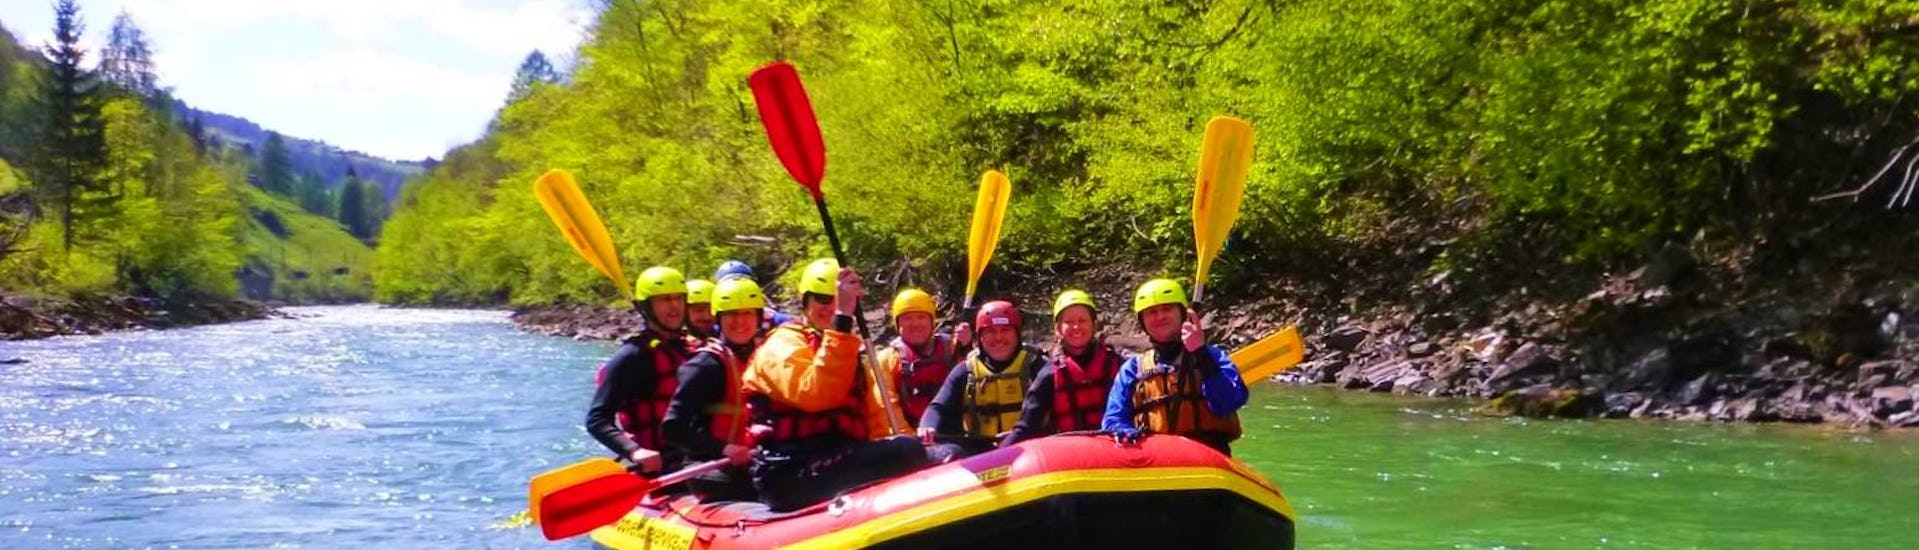 Rafting on the Saalach River for Families